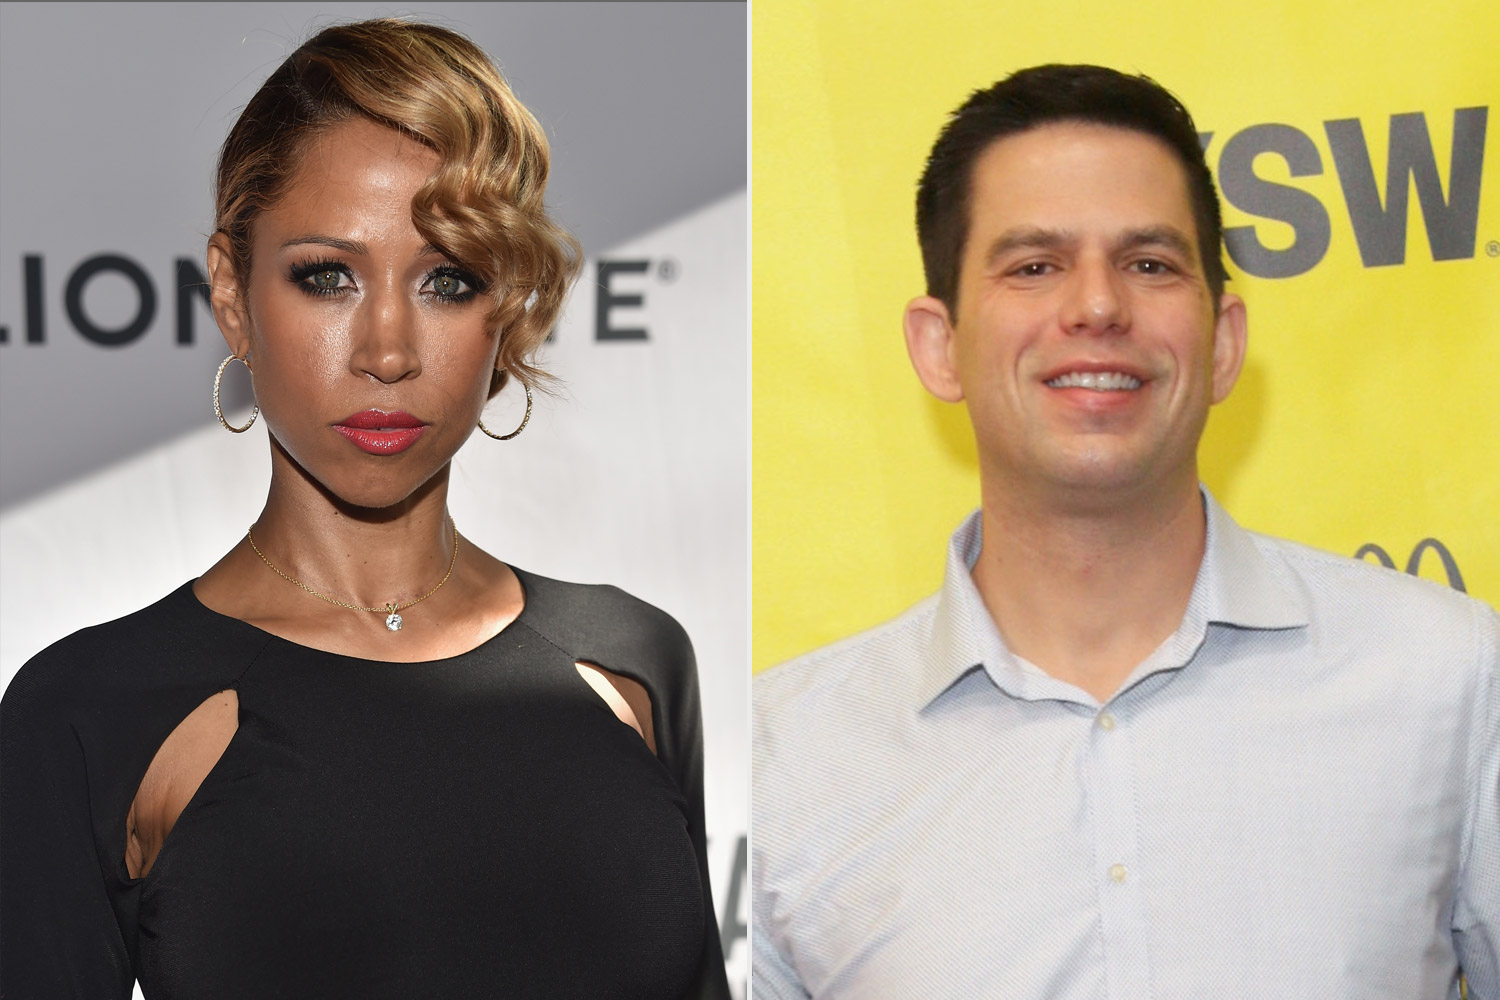 Stacey Dash Files for Divorce 9 Months After Alleged Domestic Violence  Incident